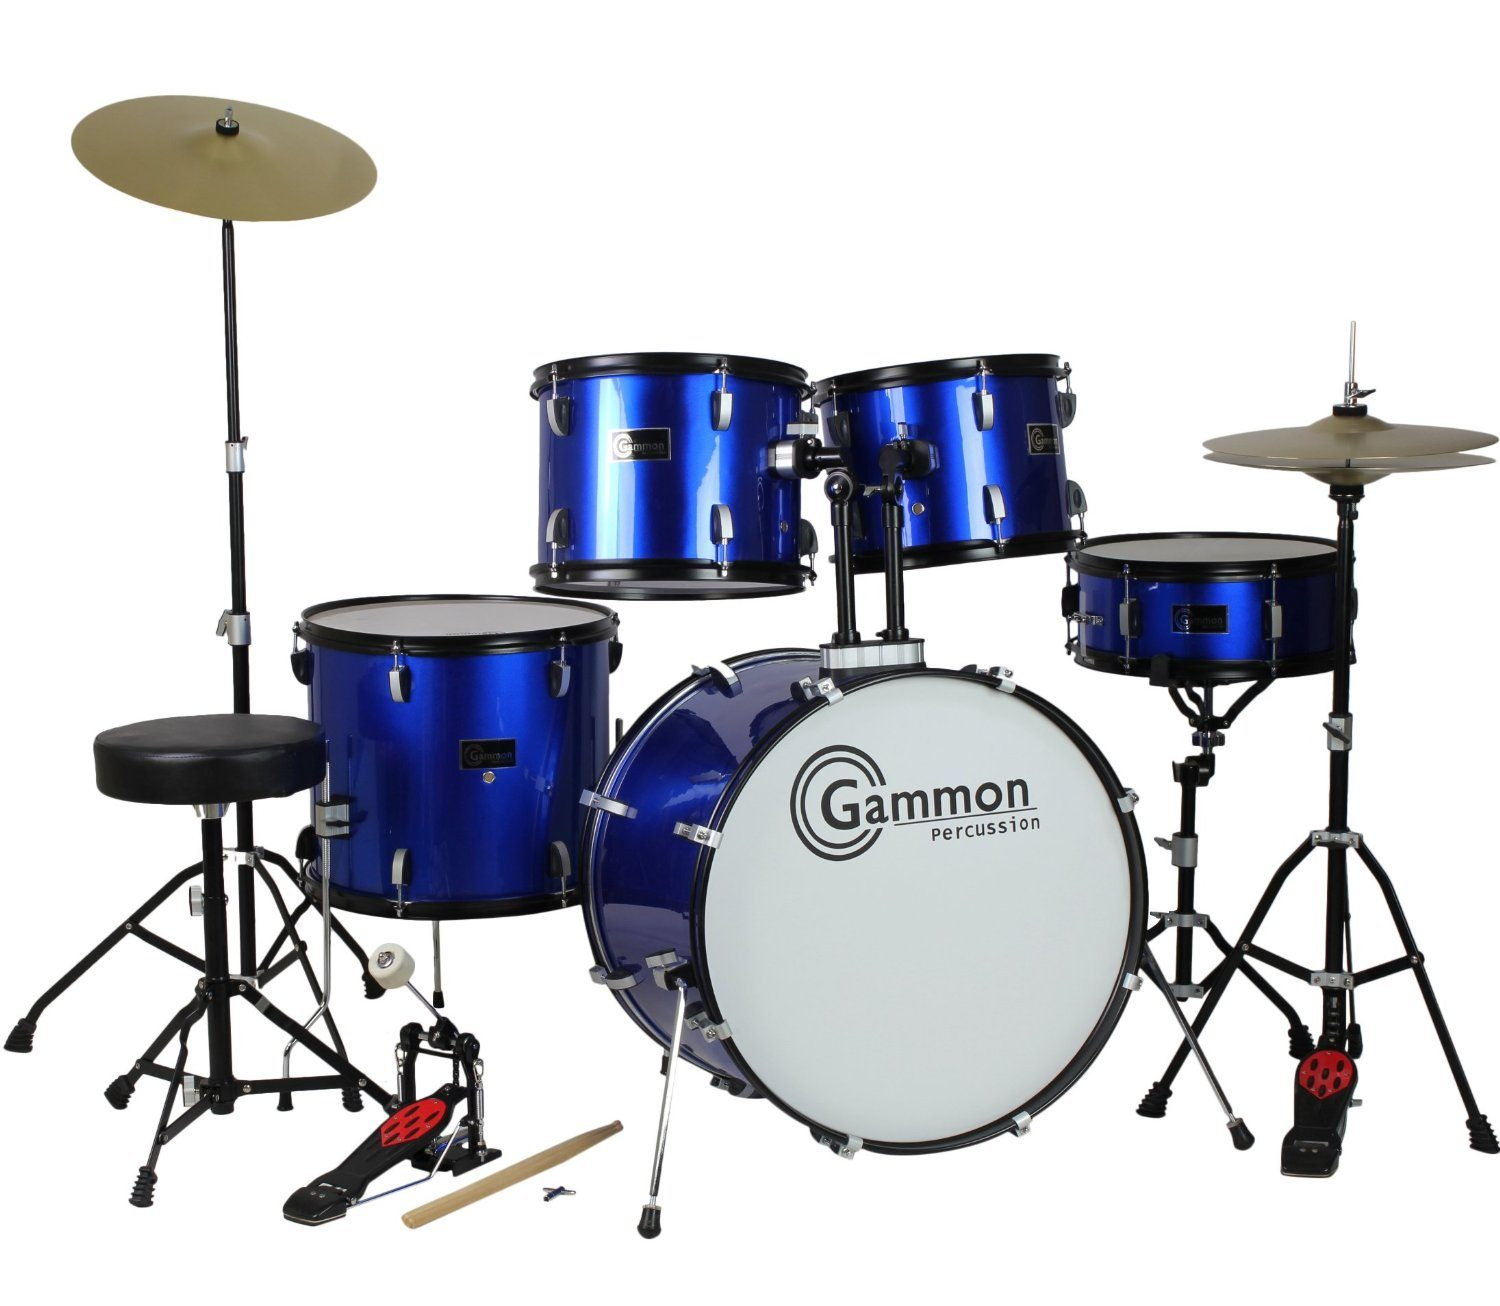 Drum Set Full Size Adult 5-piece Complete Metallic Blue (Garmon Percussion)